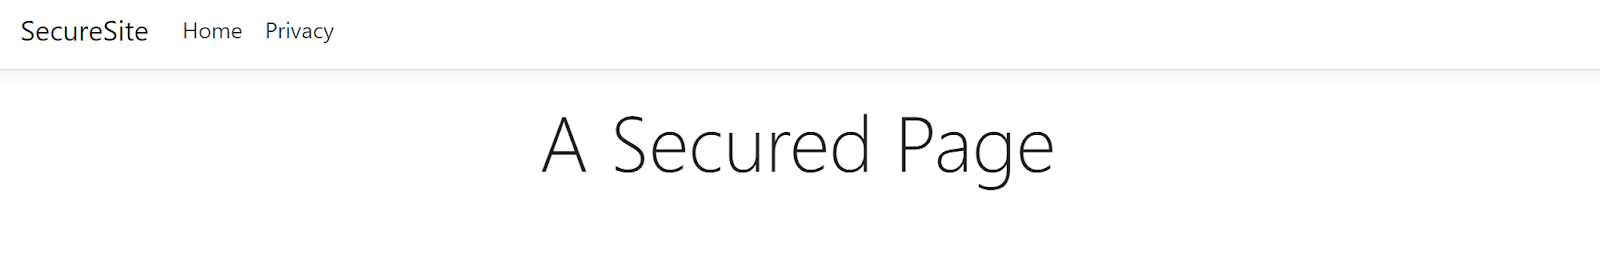 A Secure Page